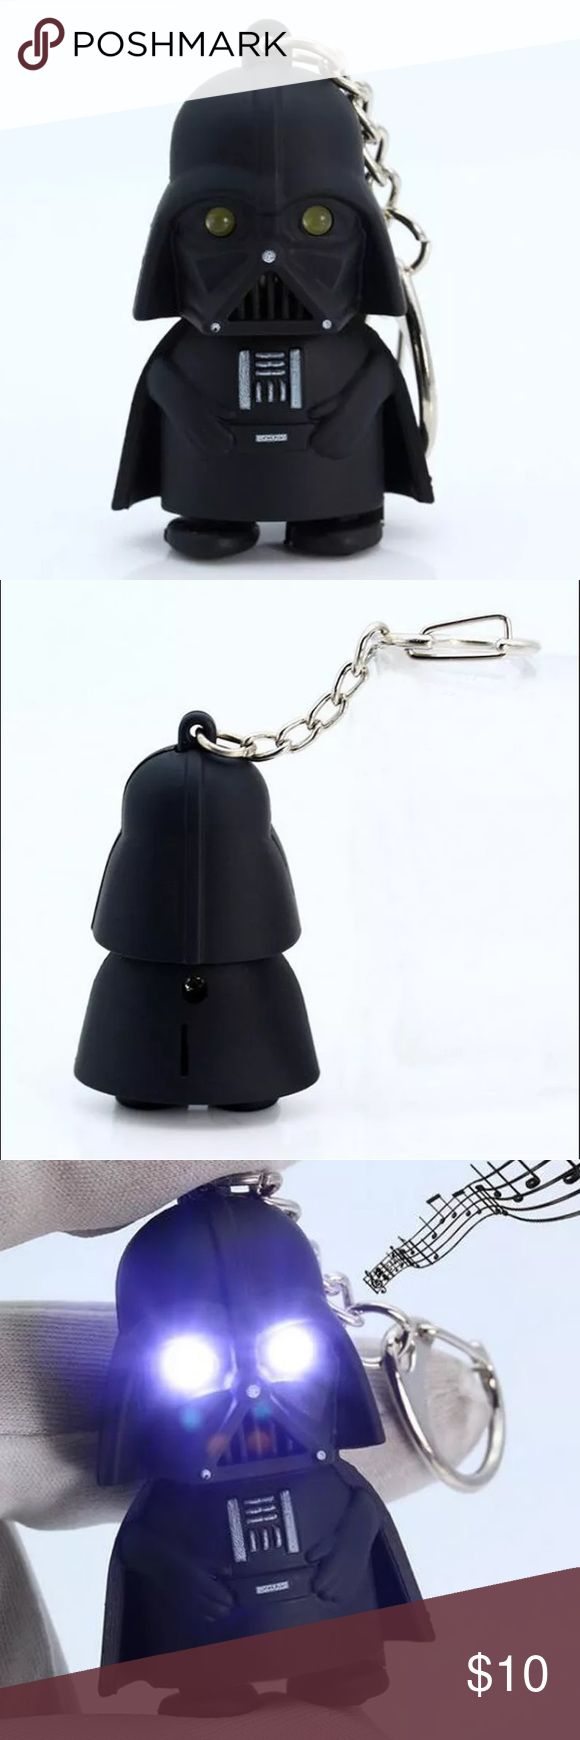 Darth Vader keychain Light up LED Star Wars Darth Vader with sound keychain Accessories Key & Card Holders